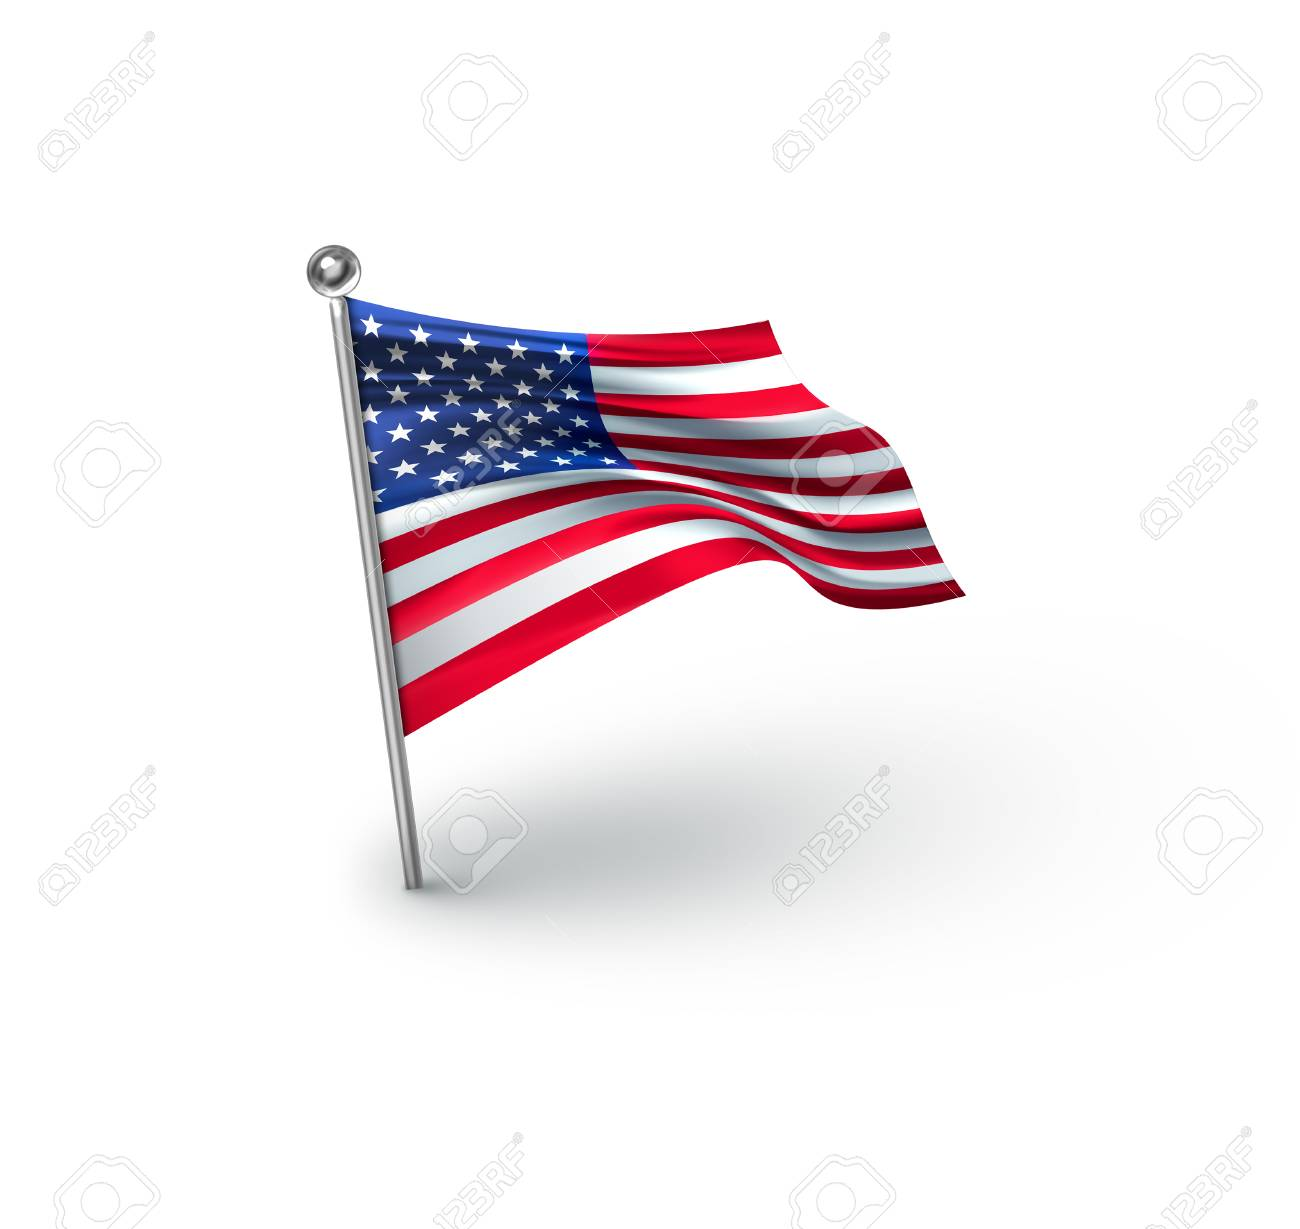 american flag against white background for independence day stock